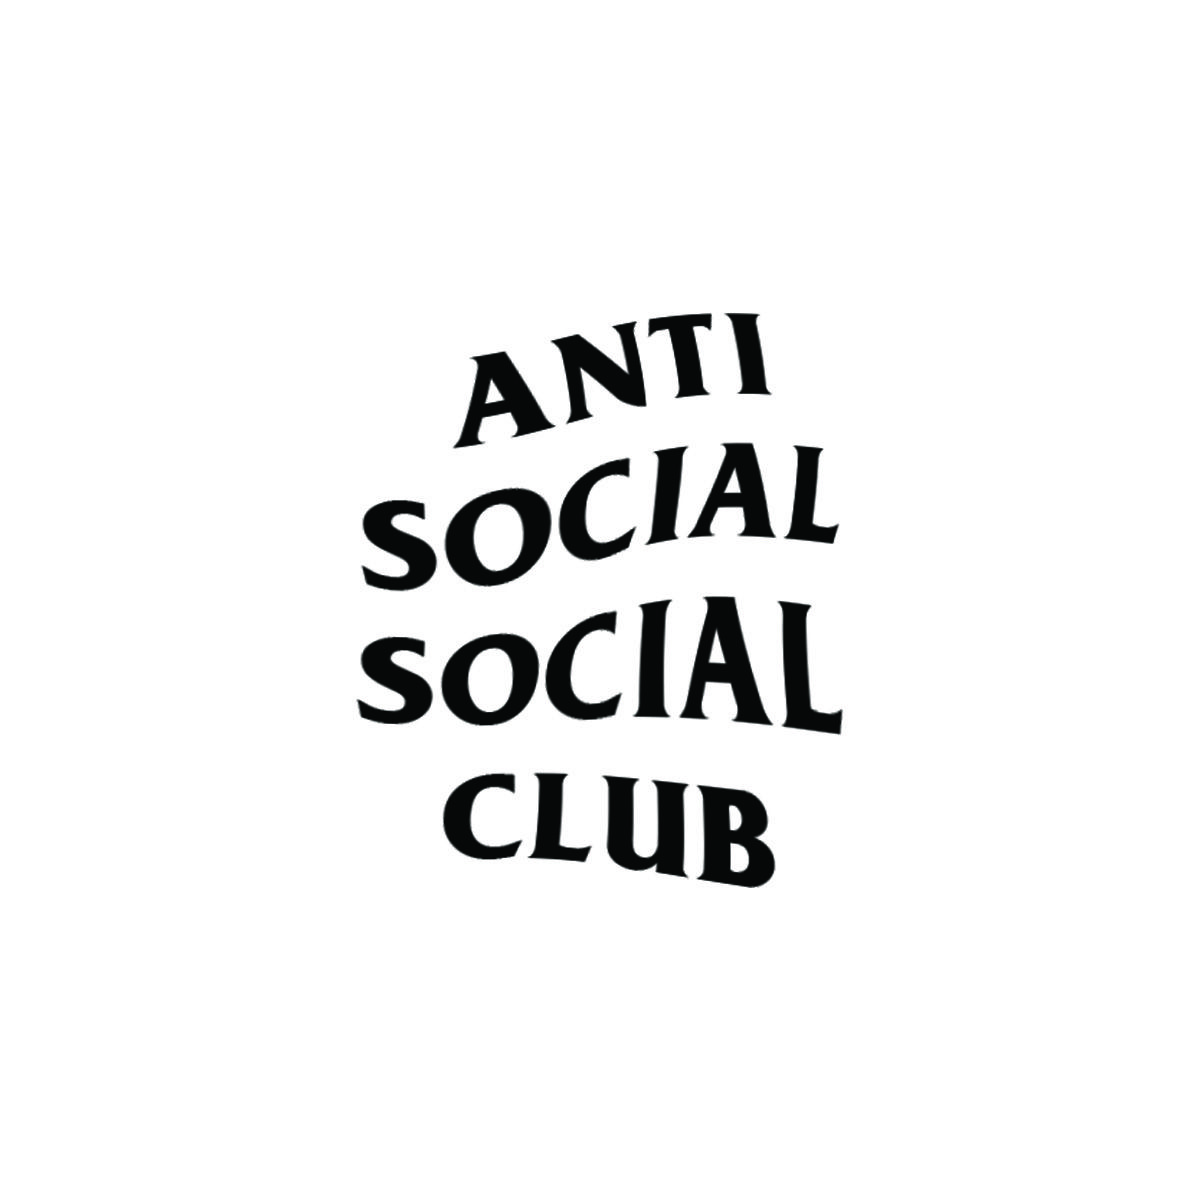 Pin By Ahern Ck On Mens Brands To Remember Anti Social Supreme Wallpaper Hypebeast Wallpaper